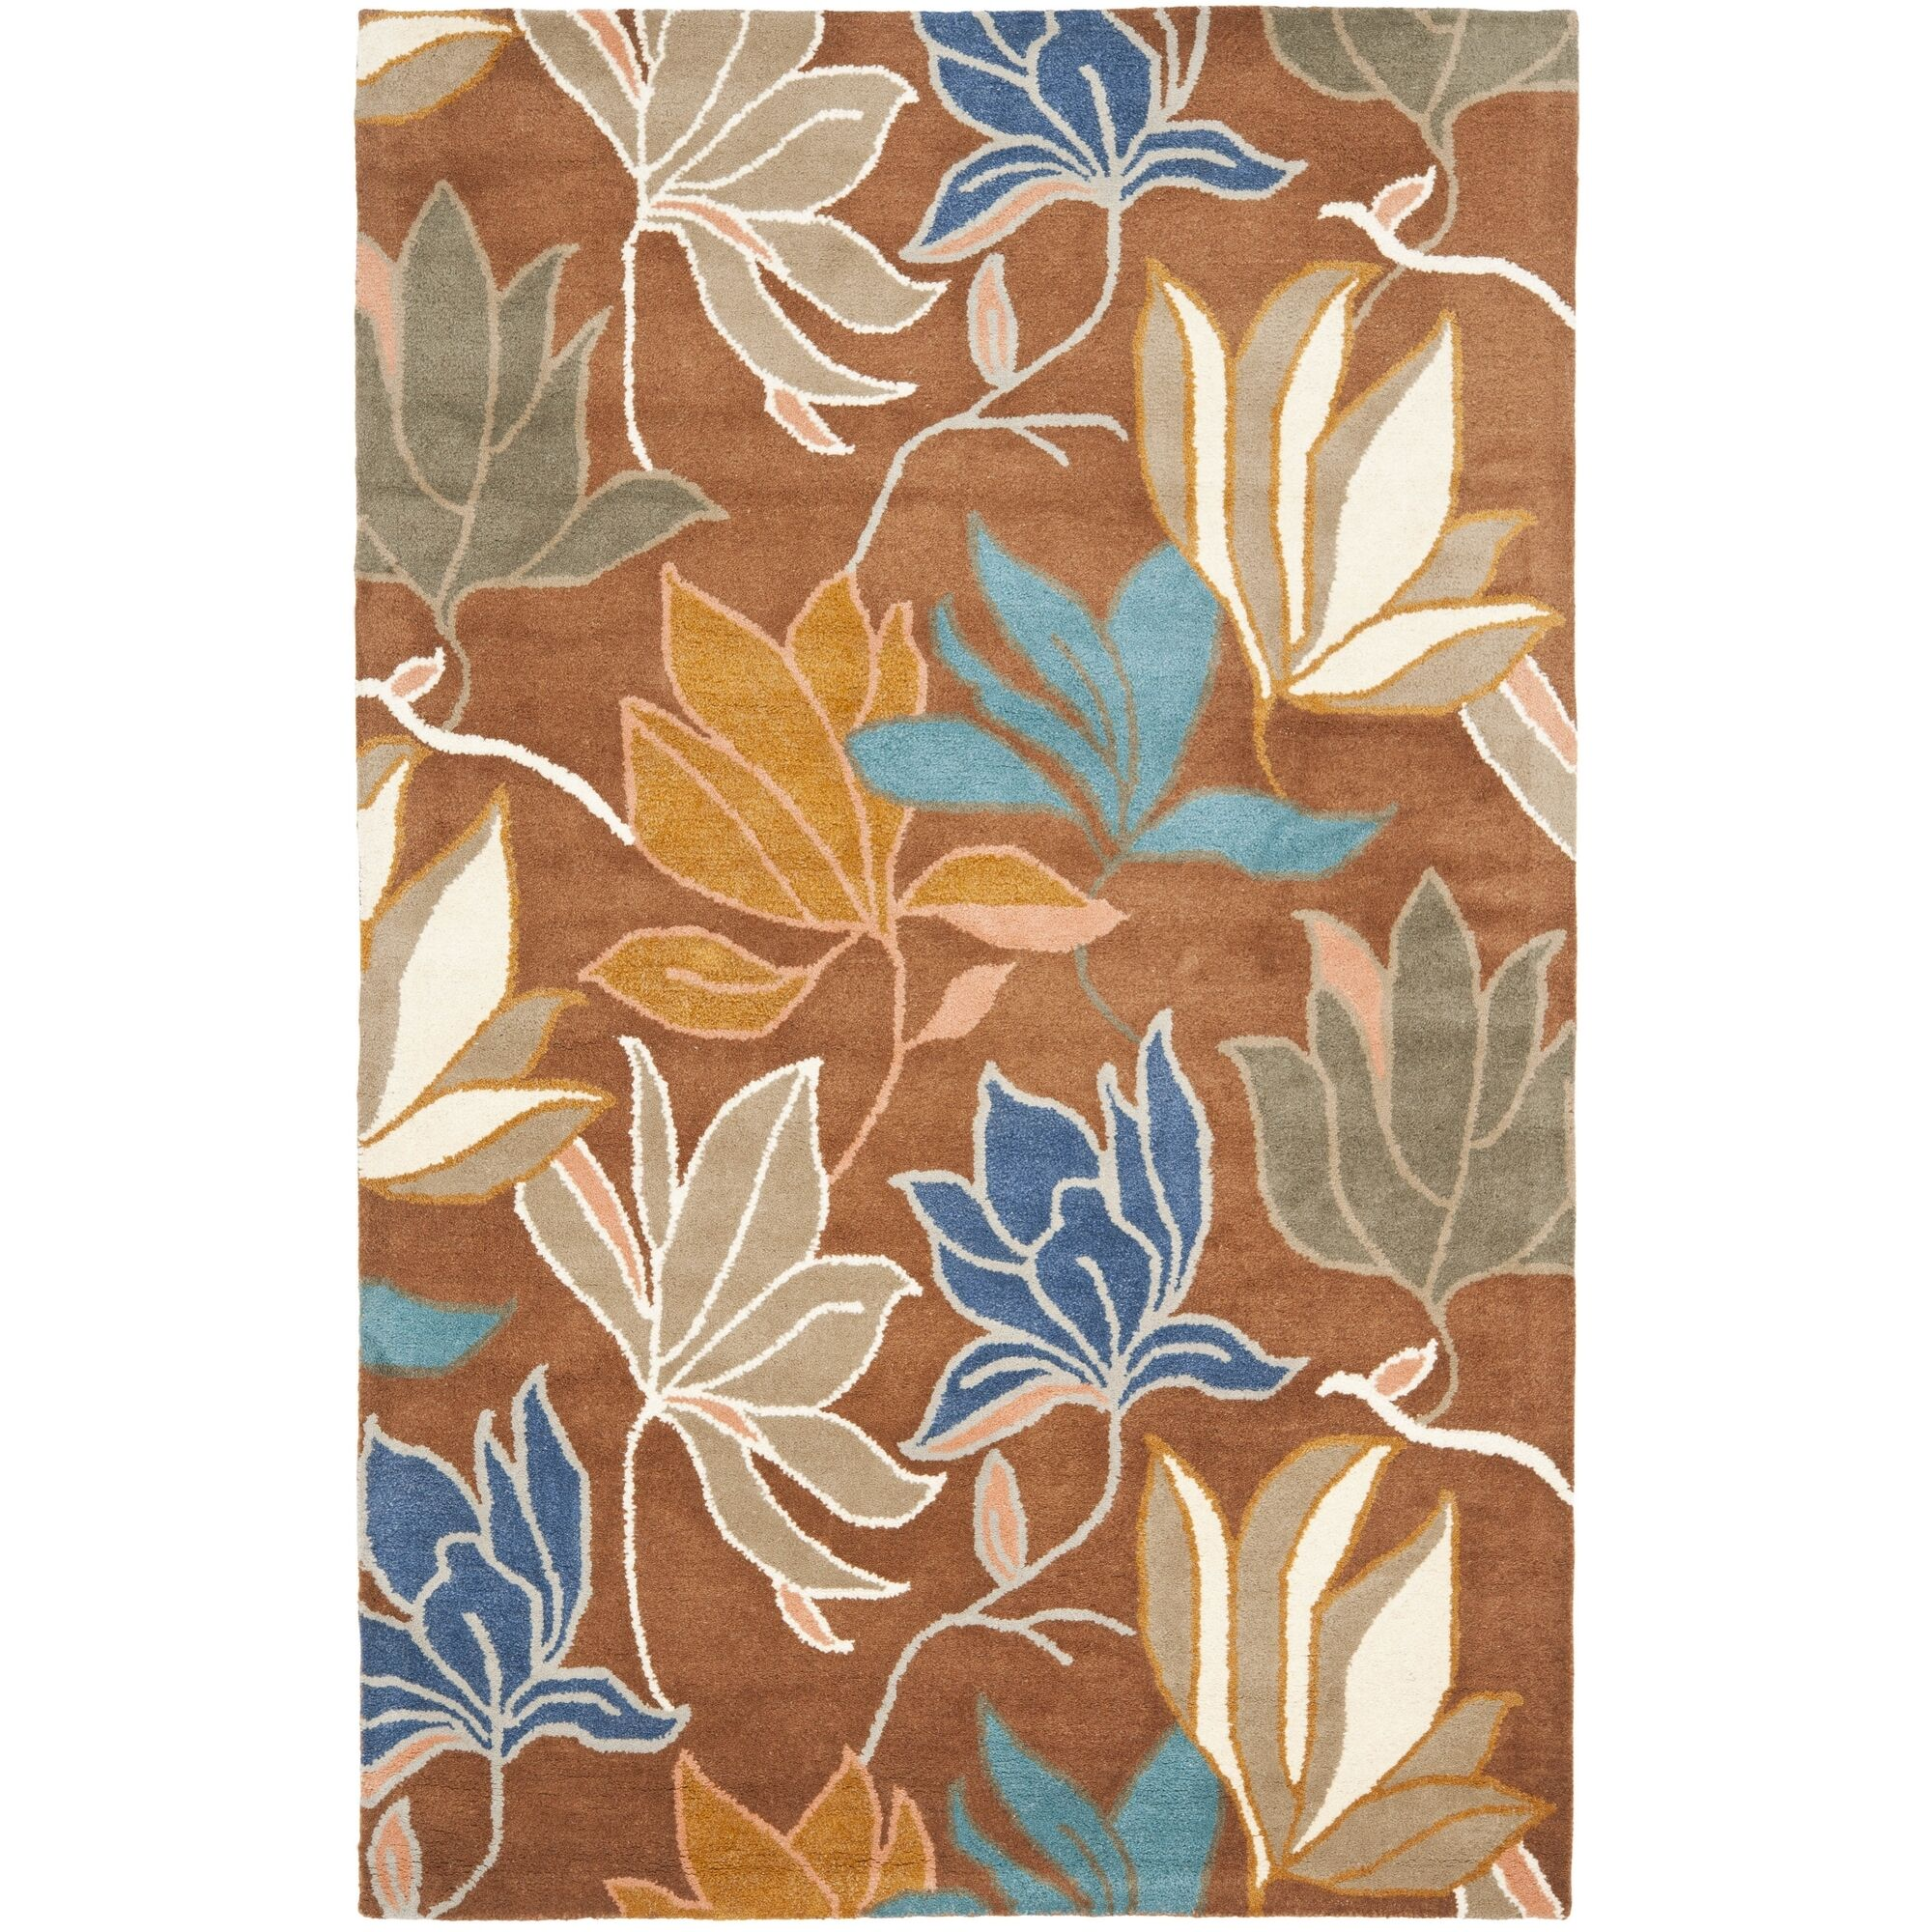 Armstrong Brown / Dark Light Multi Contemporary Rug Rug Size: Rectangle 3'6